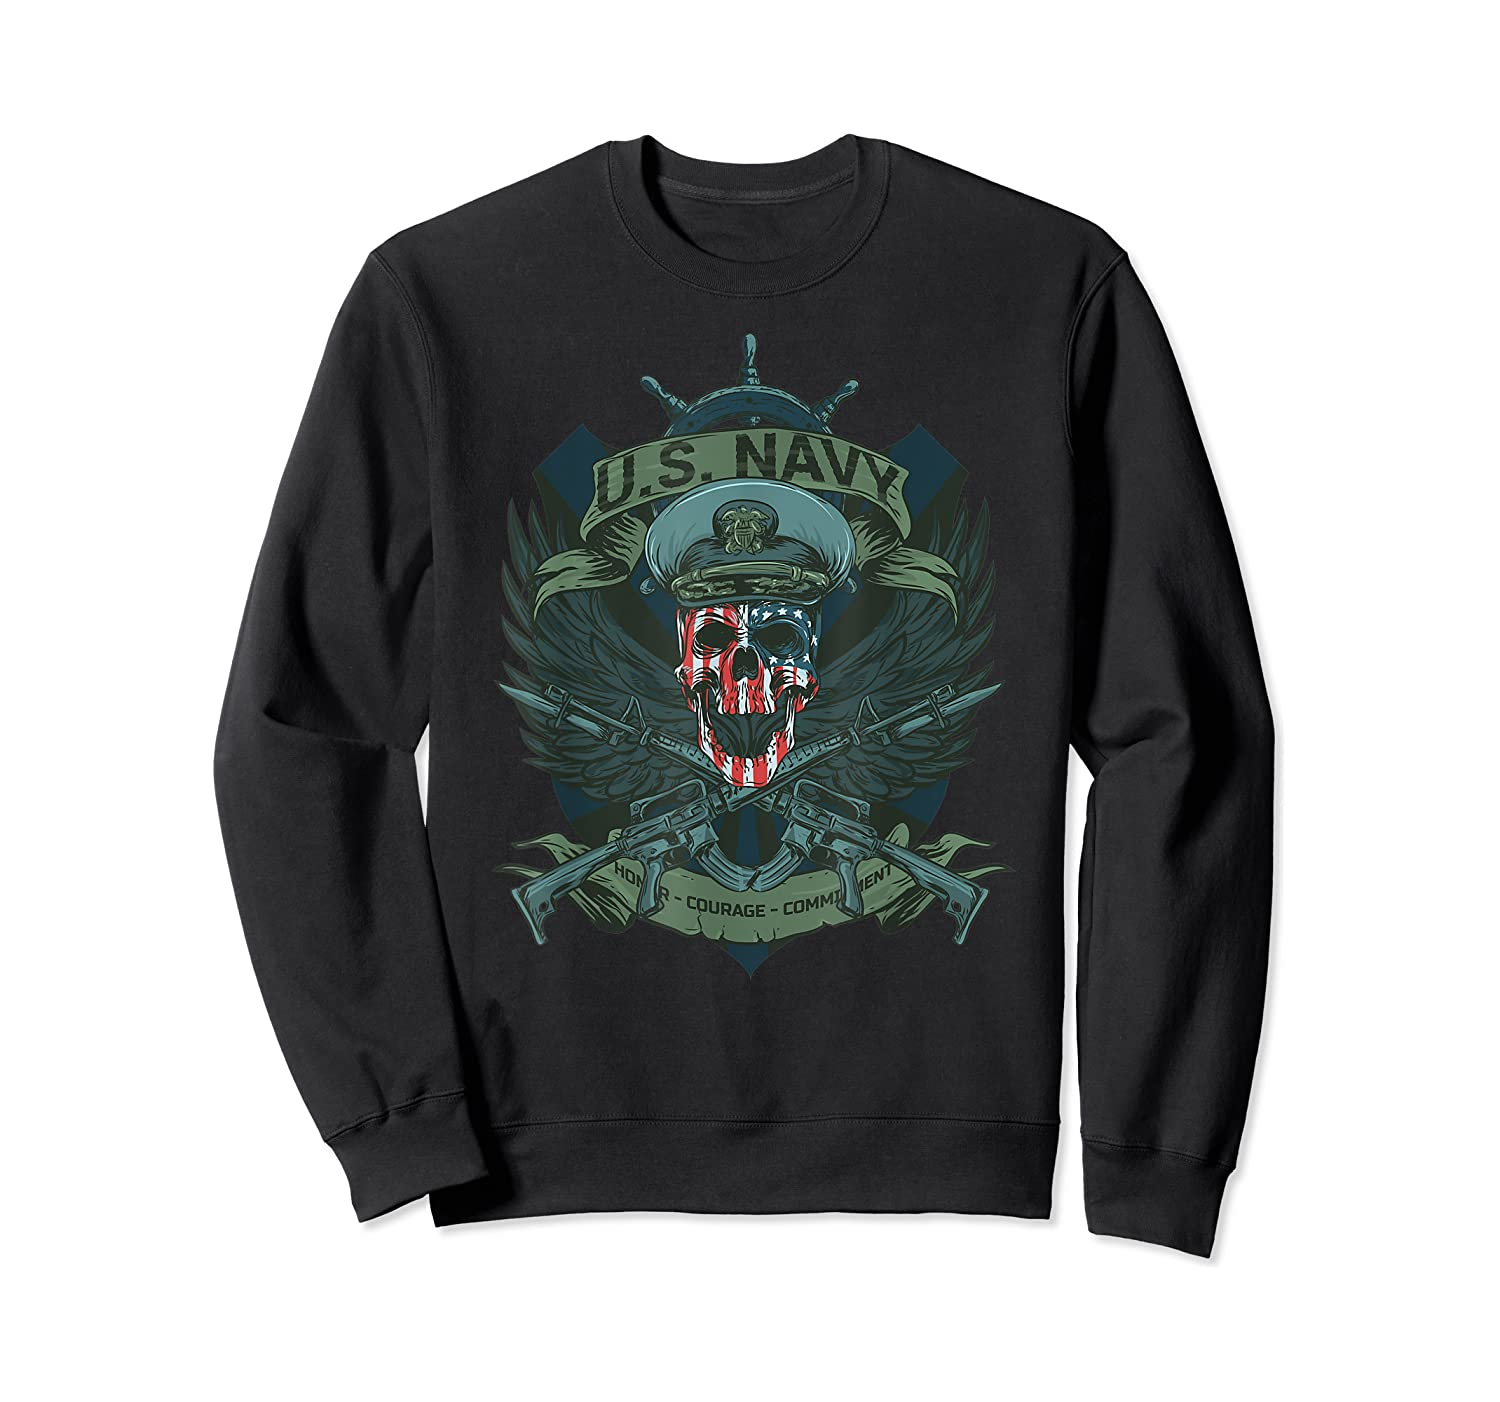 S Us Navy - Honor, Courage, Committ T-shirt For Patriots Crewneck Sweater